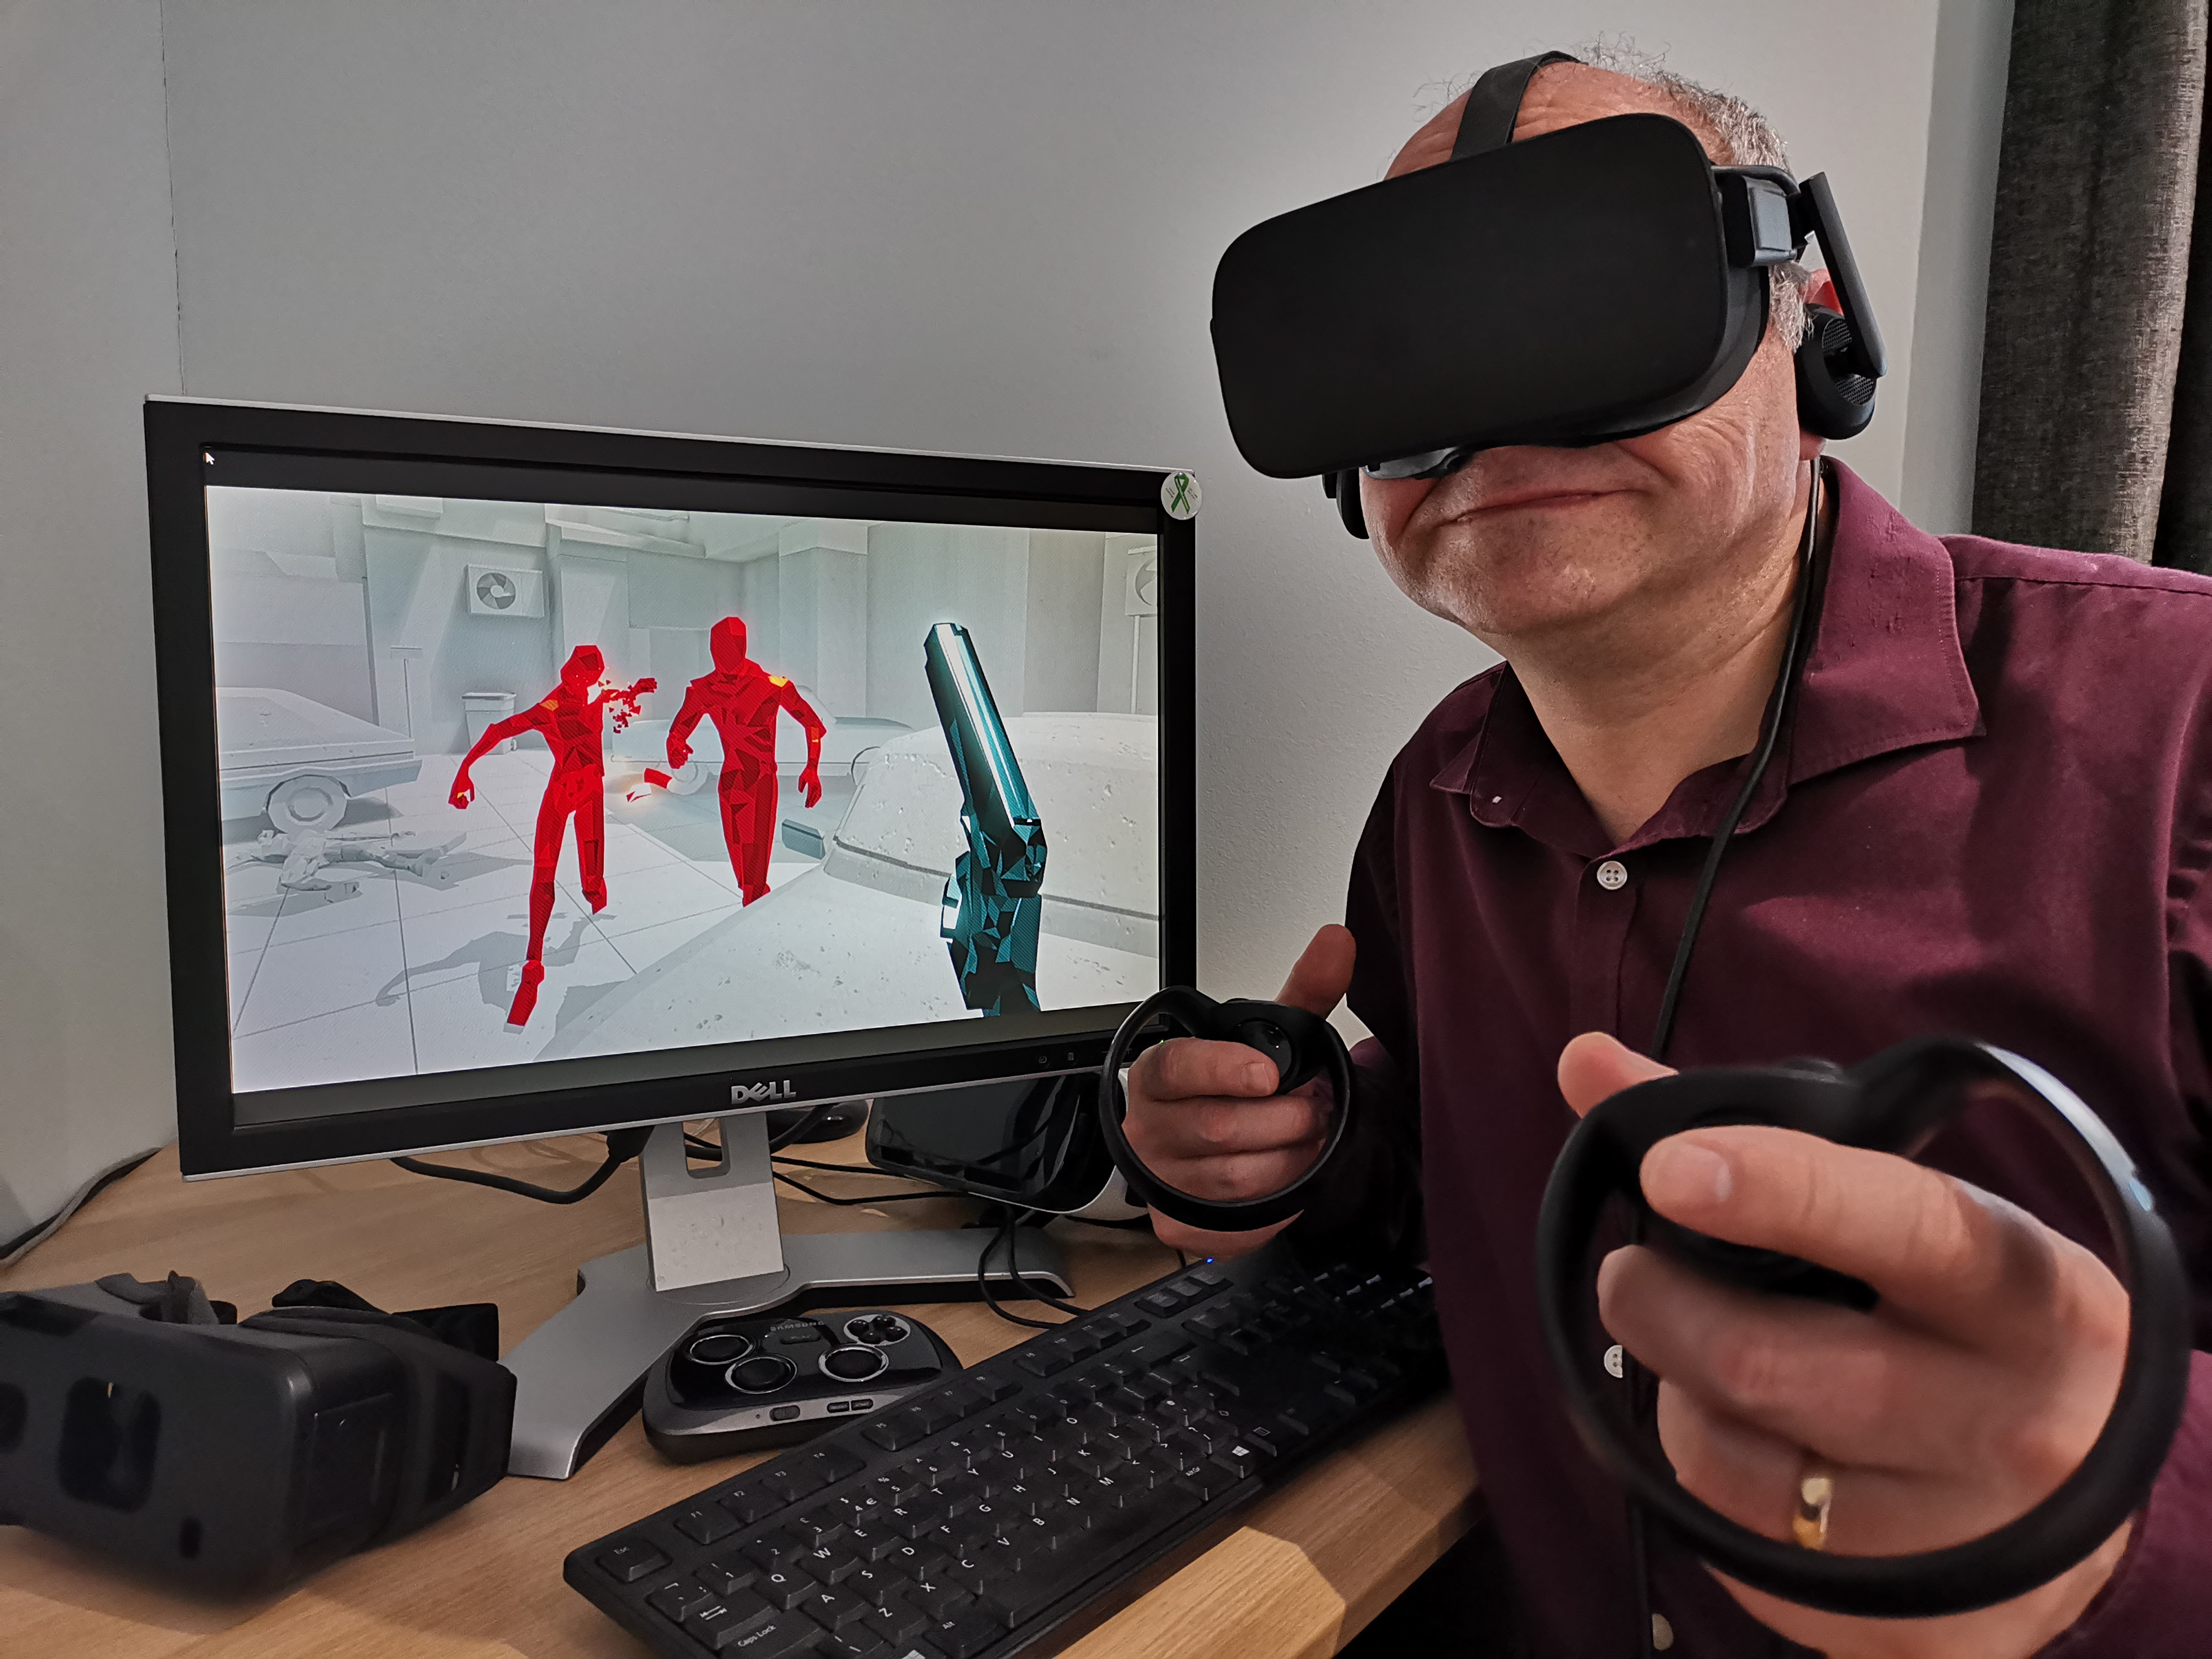 Seven years on from Oculus Rift's launch, how far have we come? | Opinion